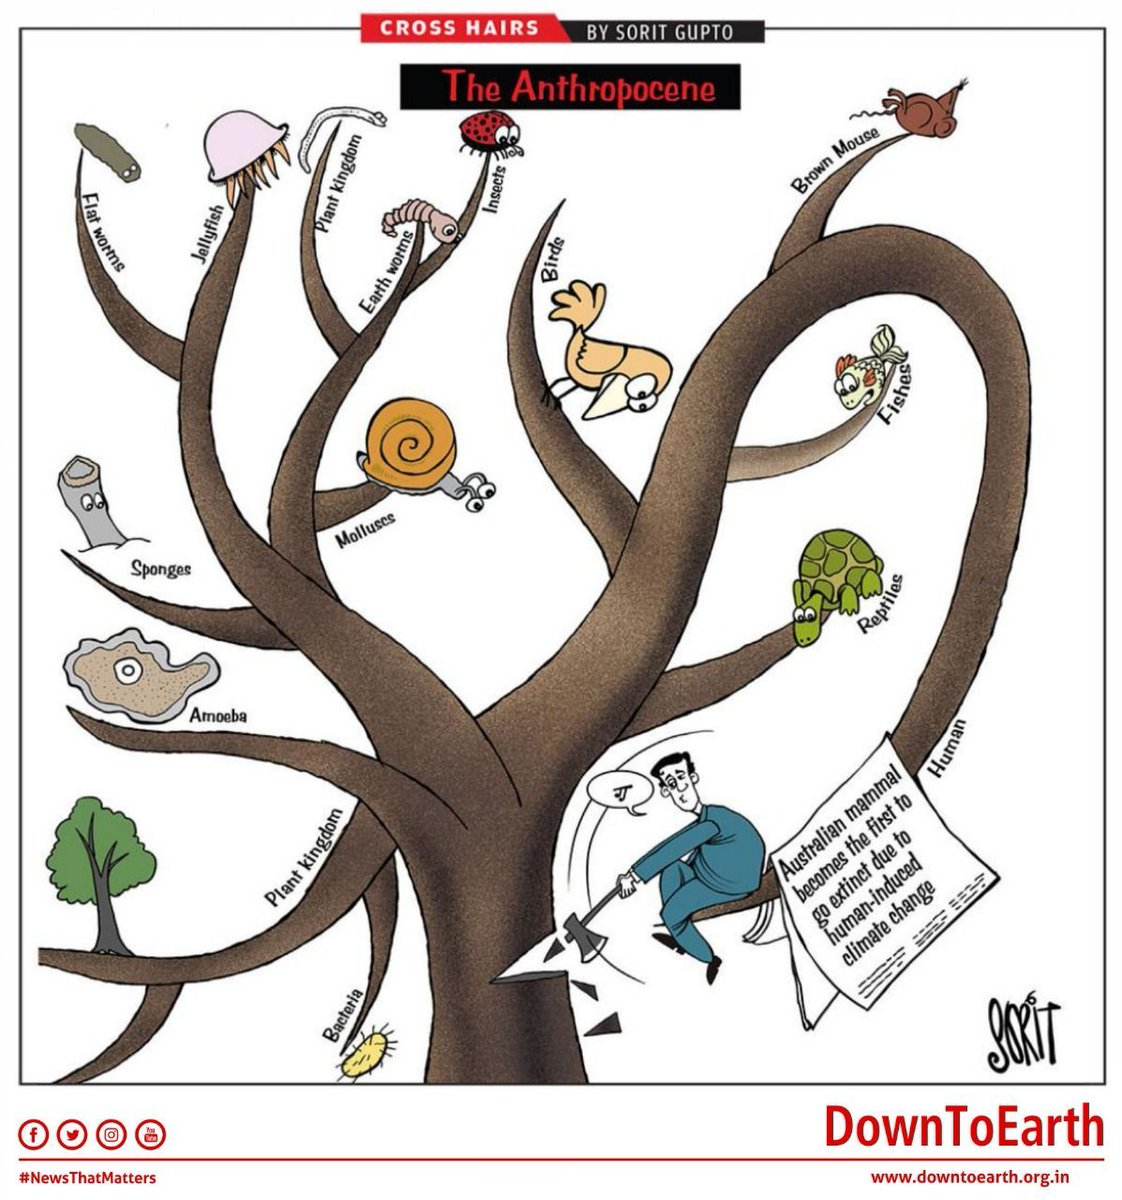 Down To Earth On Twitter Cartoon The Anthropocene Tree Of Life Climatechange Wildlife Biodiversity A & a scientific resources sdn bhd, trees, green leafed tree png clipart. climatechange wildlife biodiversity